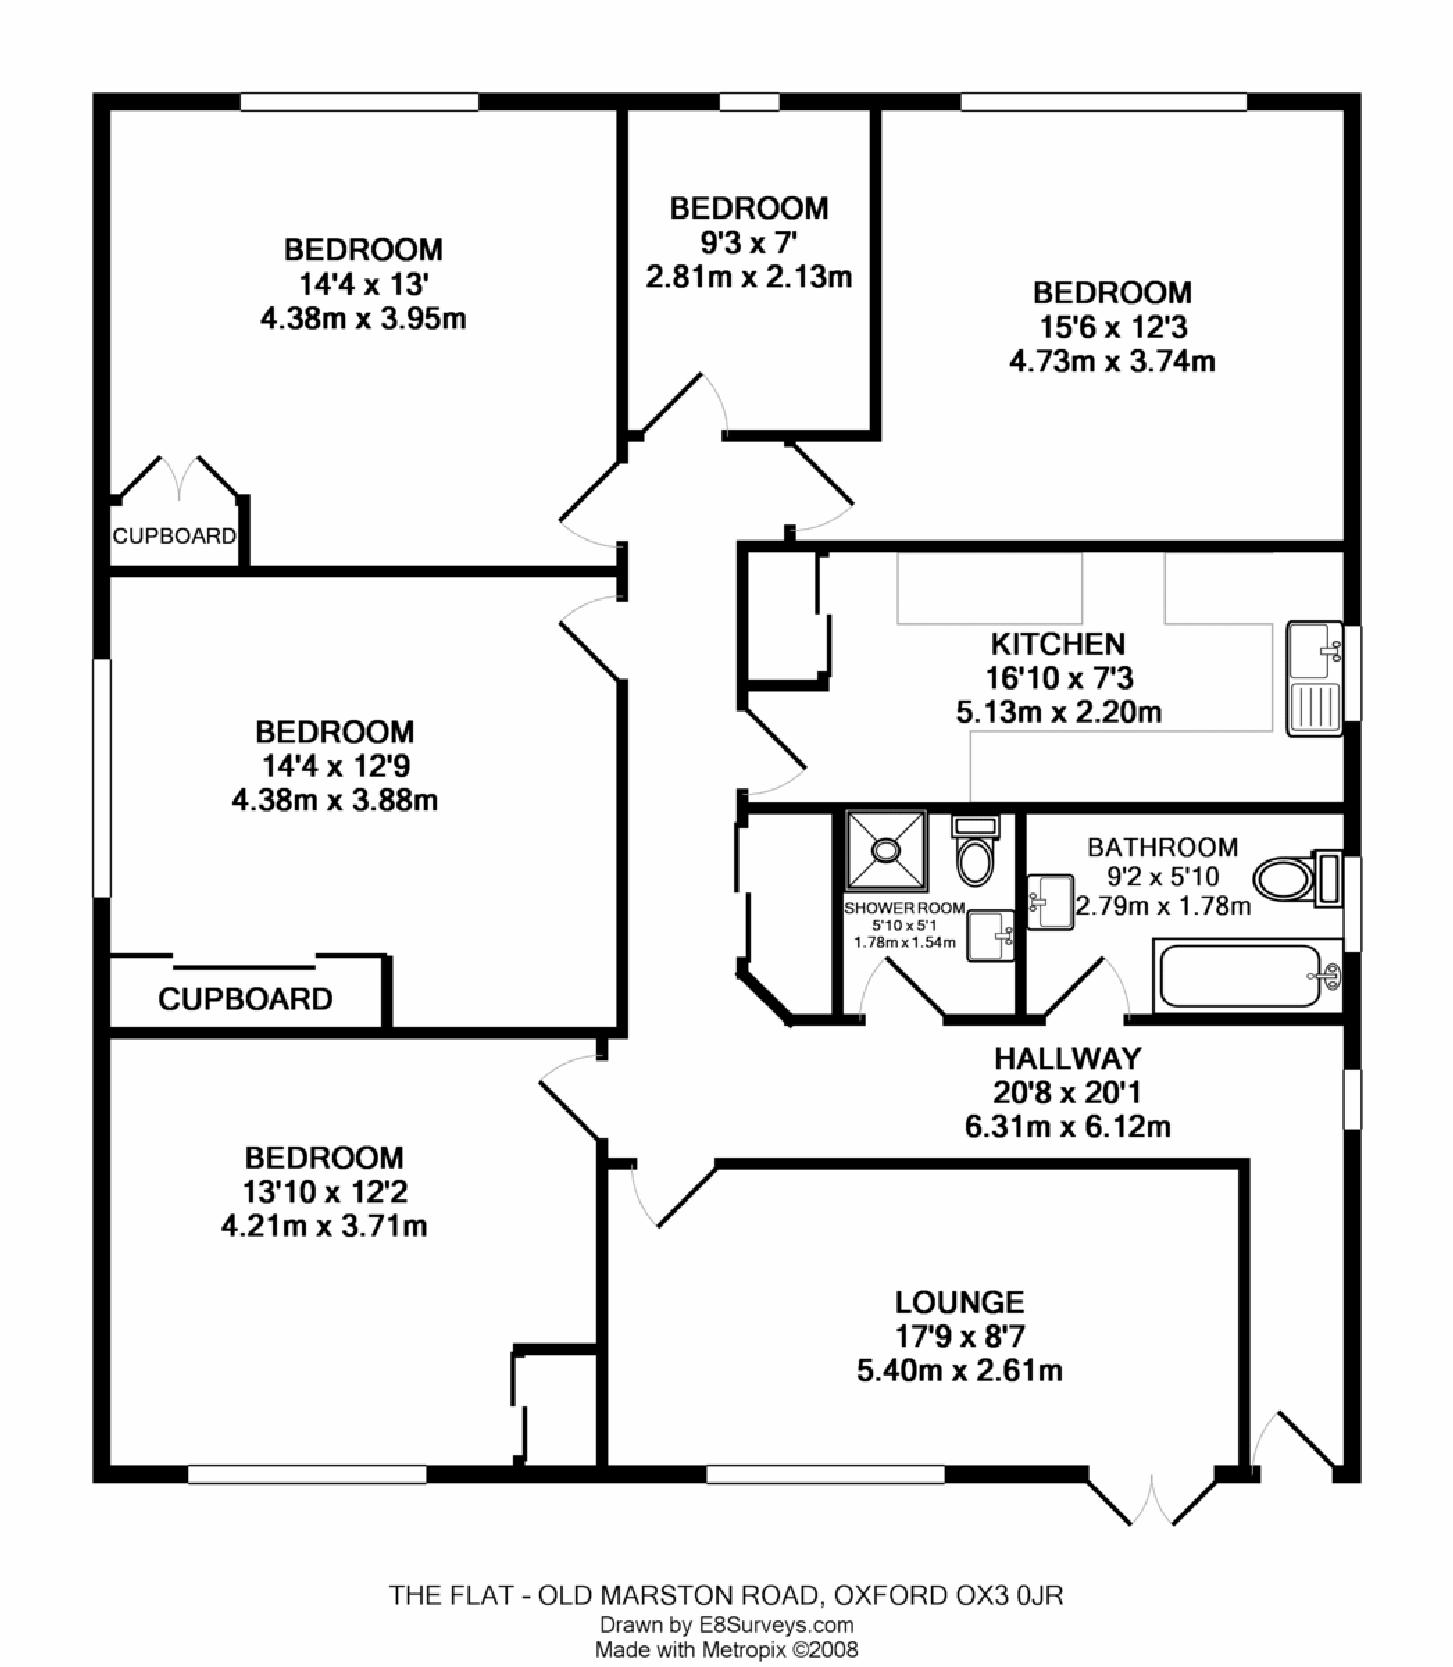 Old marston road marston ox3 ref 25001 oxford for Four bedroom maisonette plans